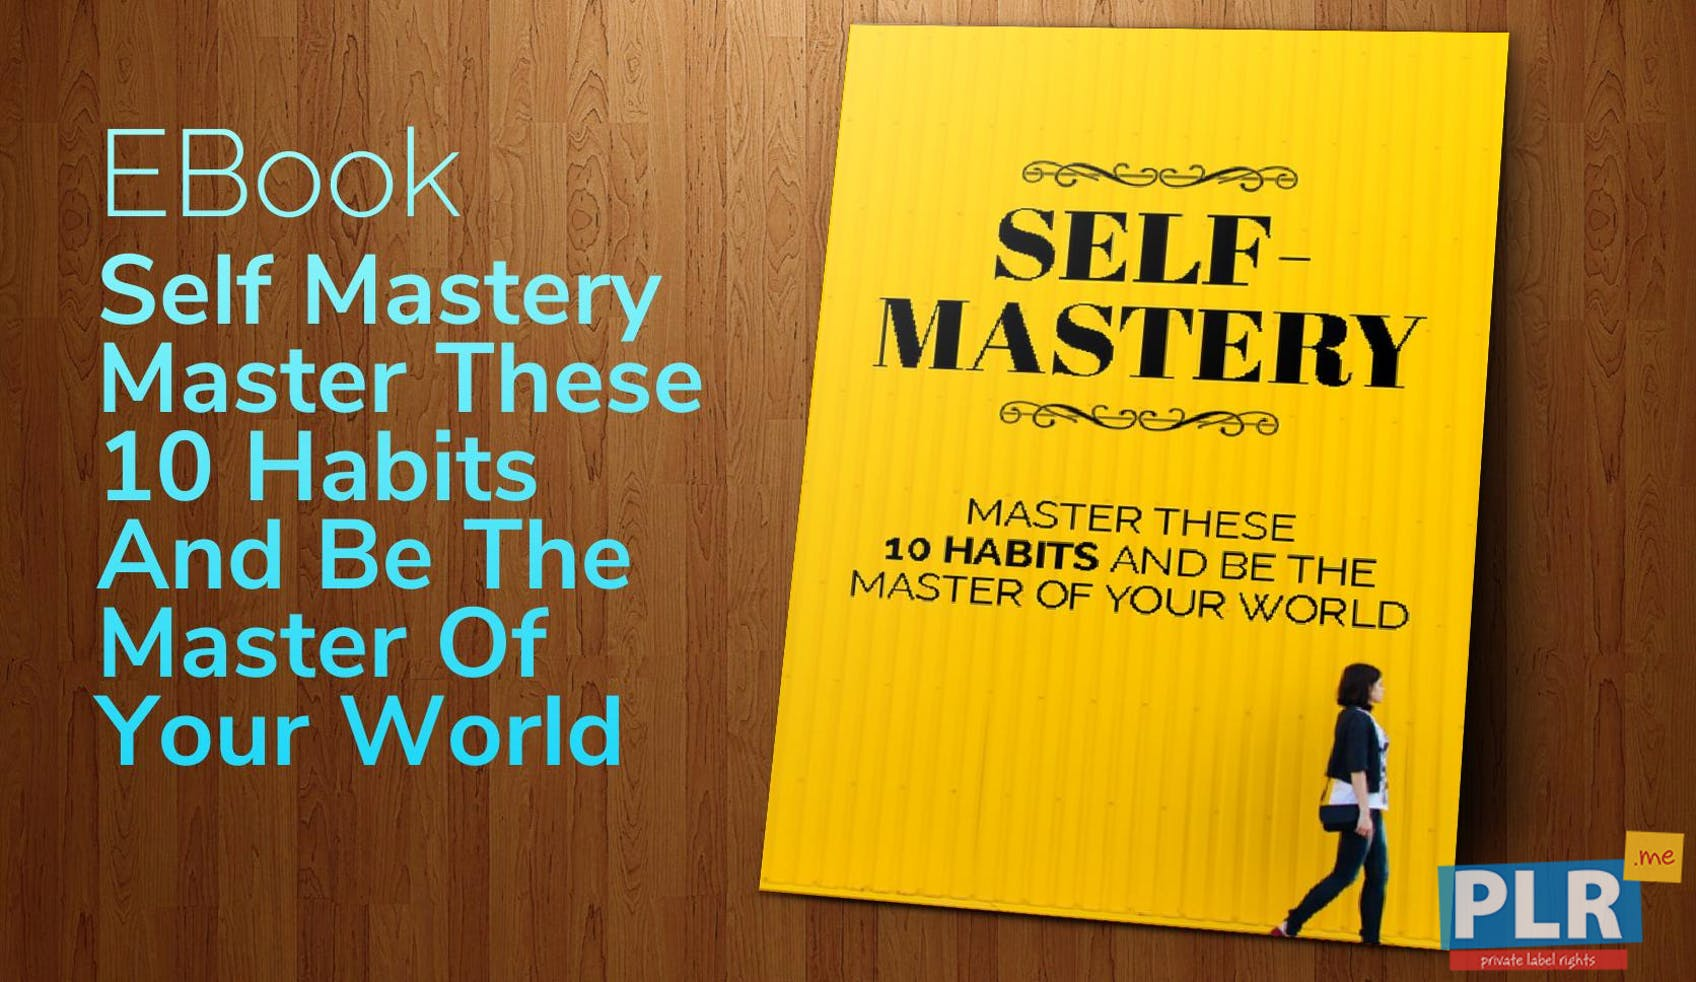 Self Mastery Master These 10 Habits And Be The Master Of Your World